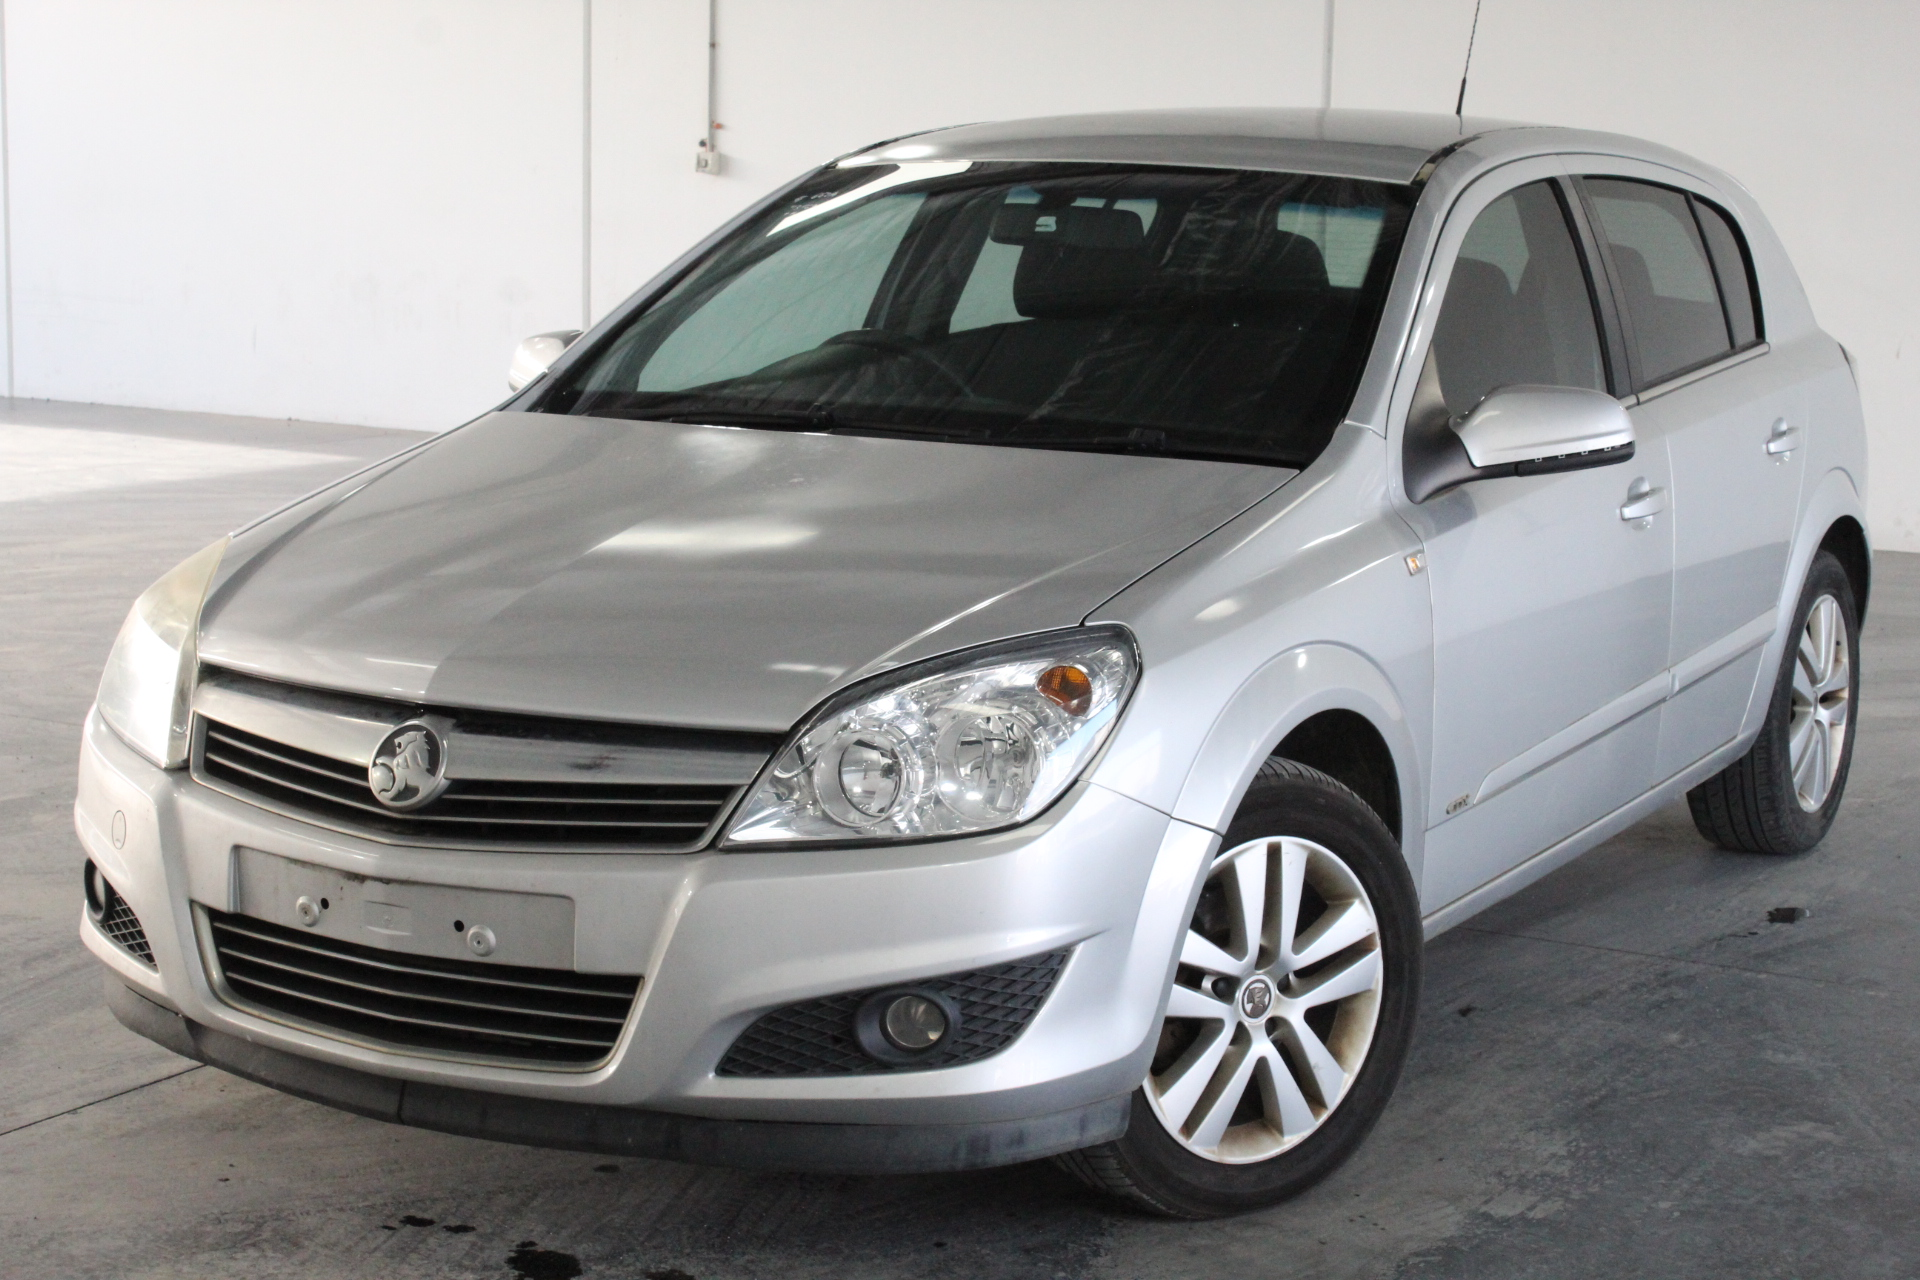 2007 Holden Astra CDX AH Automatic Hatchback